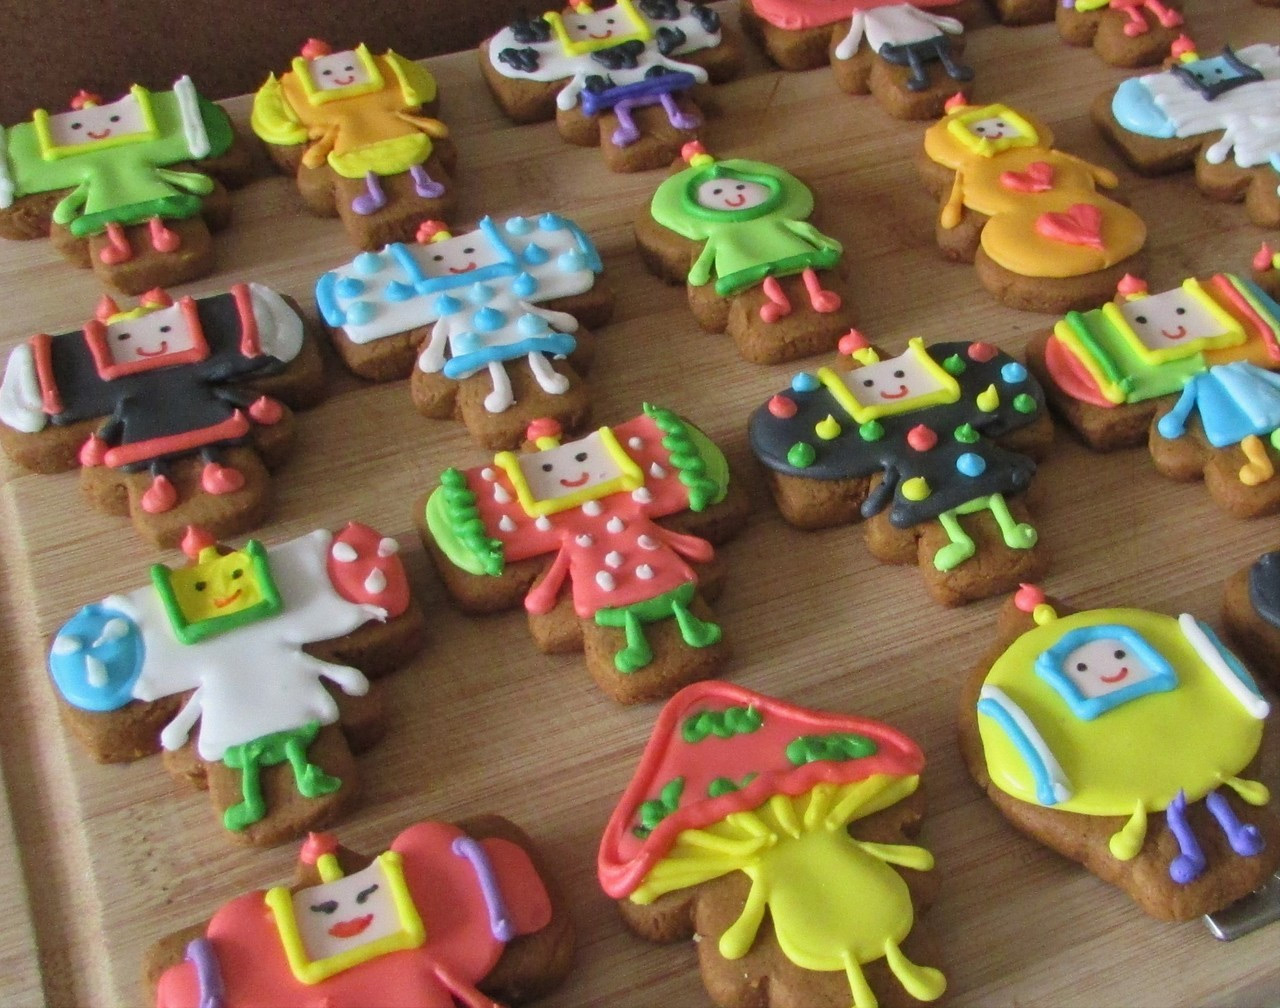 Katamari cookies created by Cowabunga